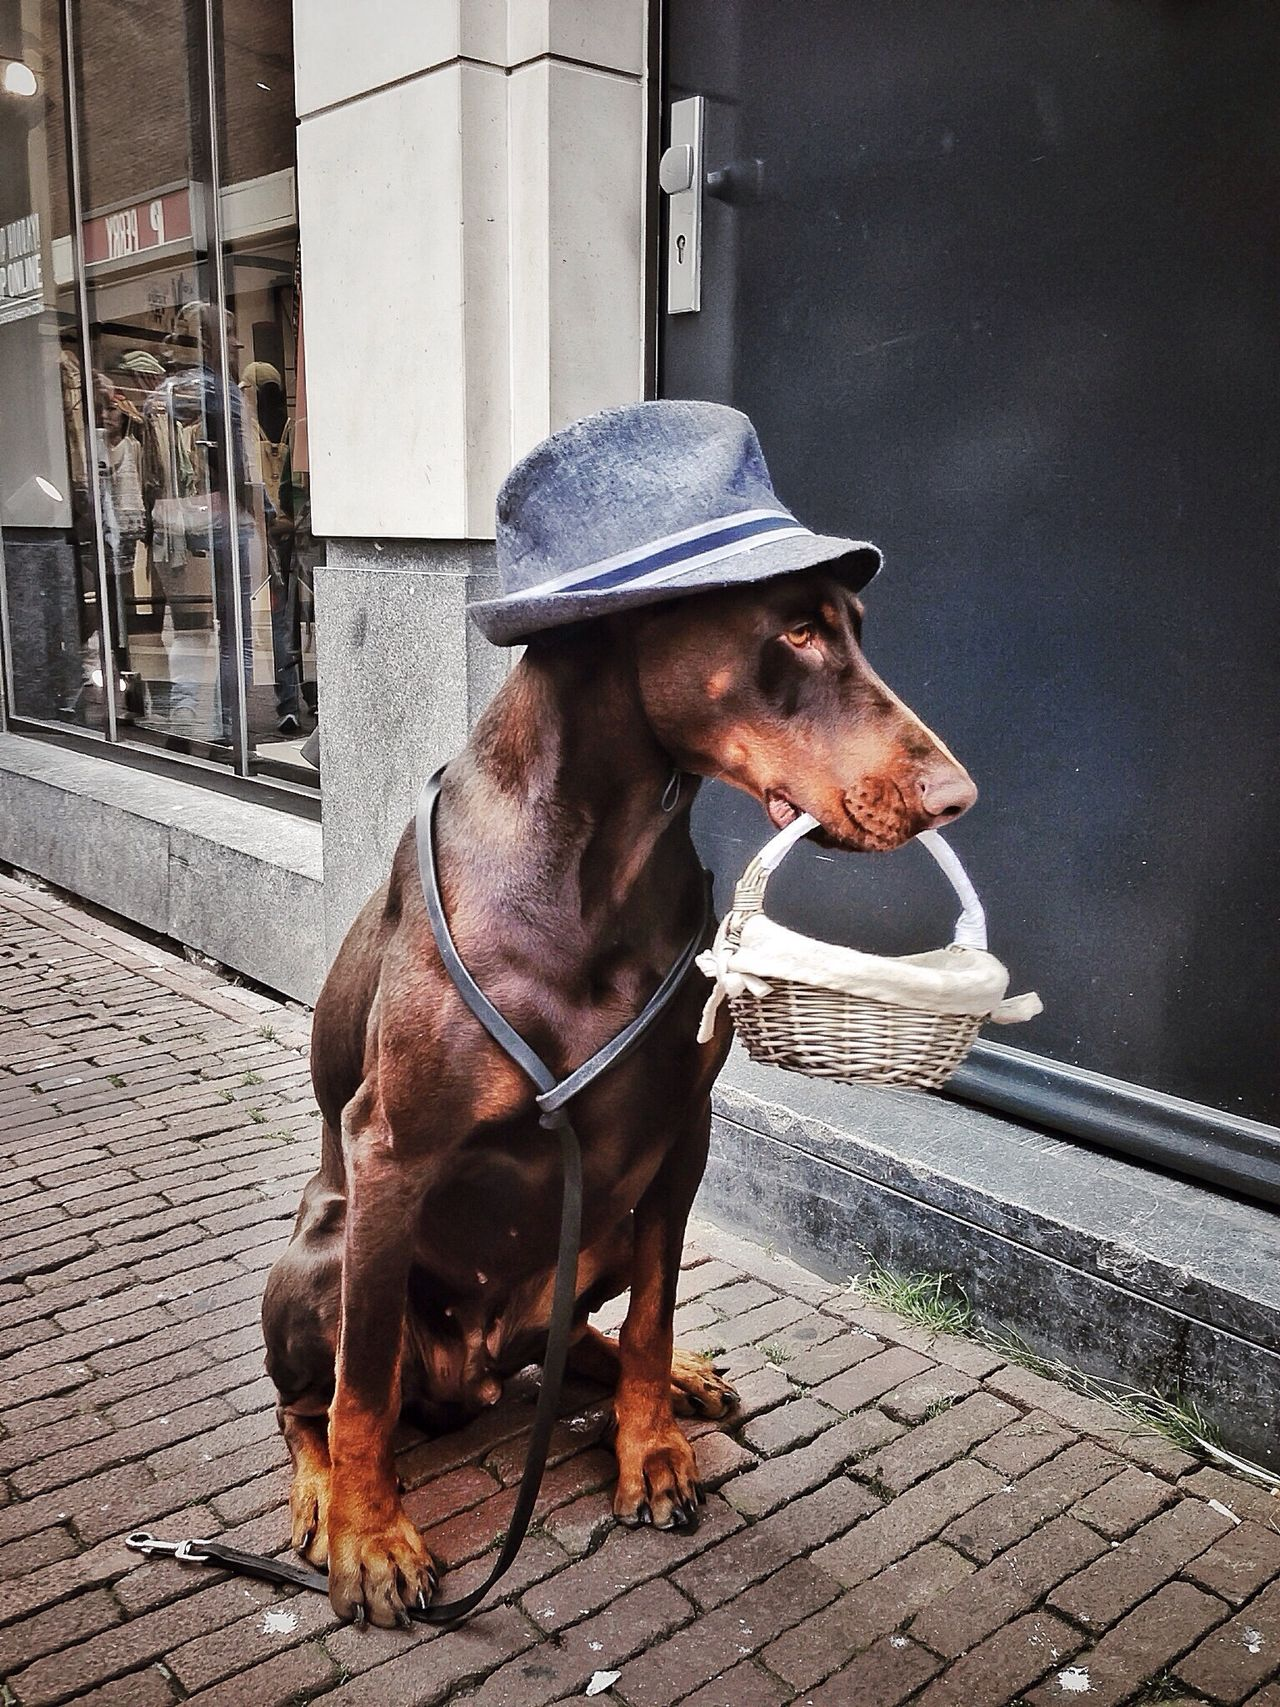 Beautiful stock photos of hat, Animal Themes, Architecture, Basket, Building Exterior